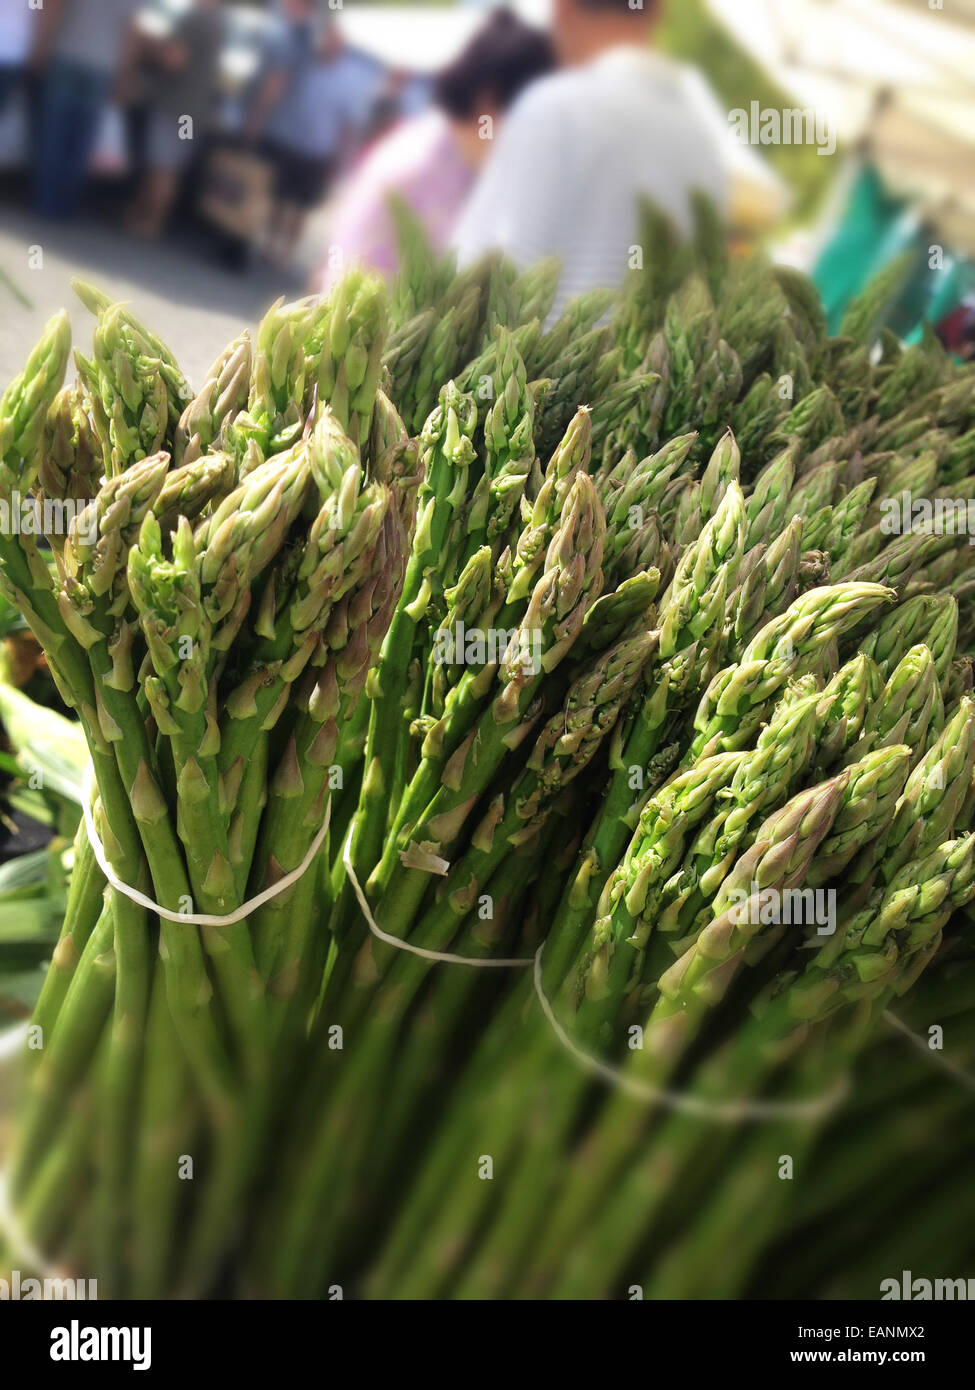 Asparagus bunches at a farmers market stand - Stock Image